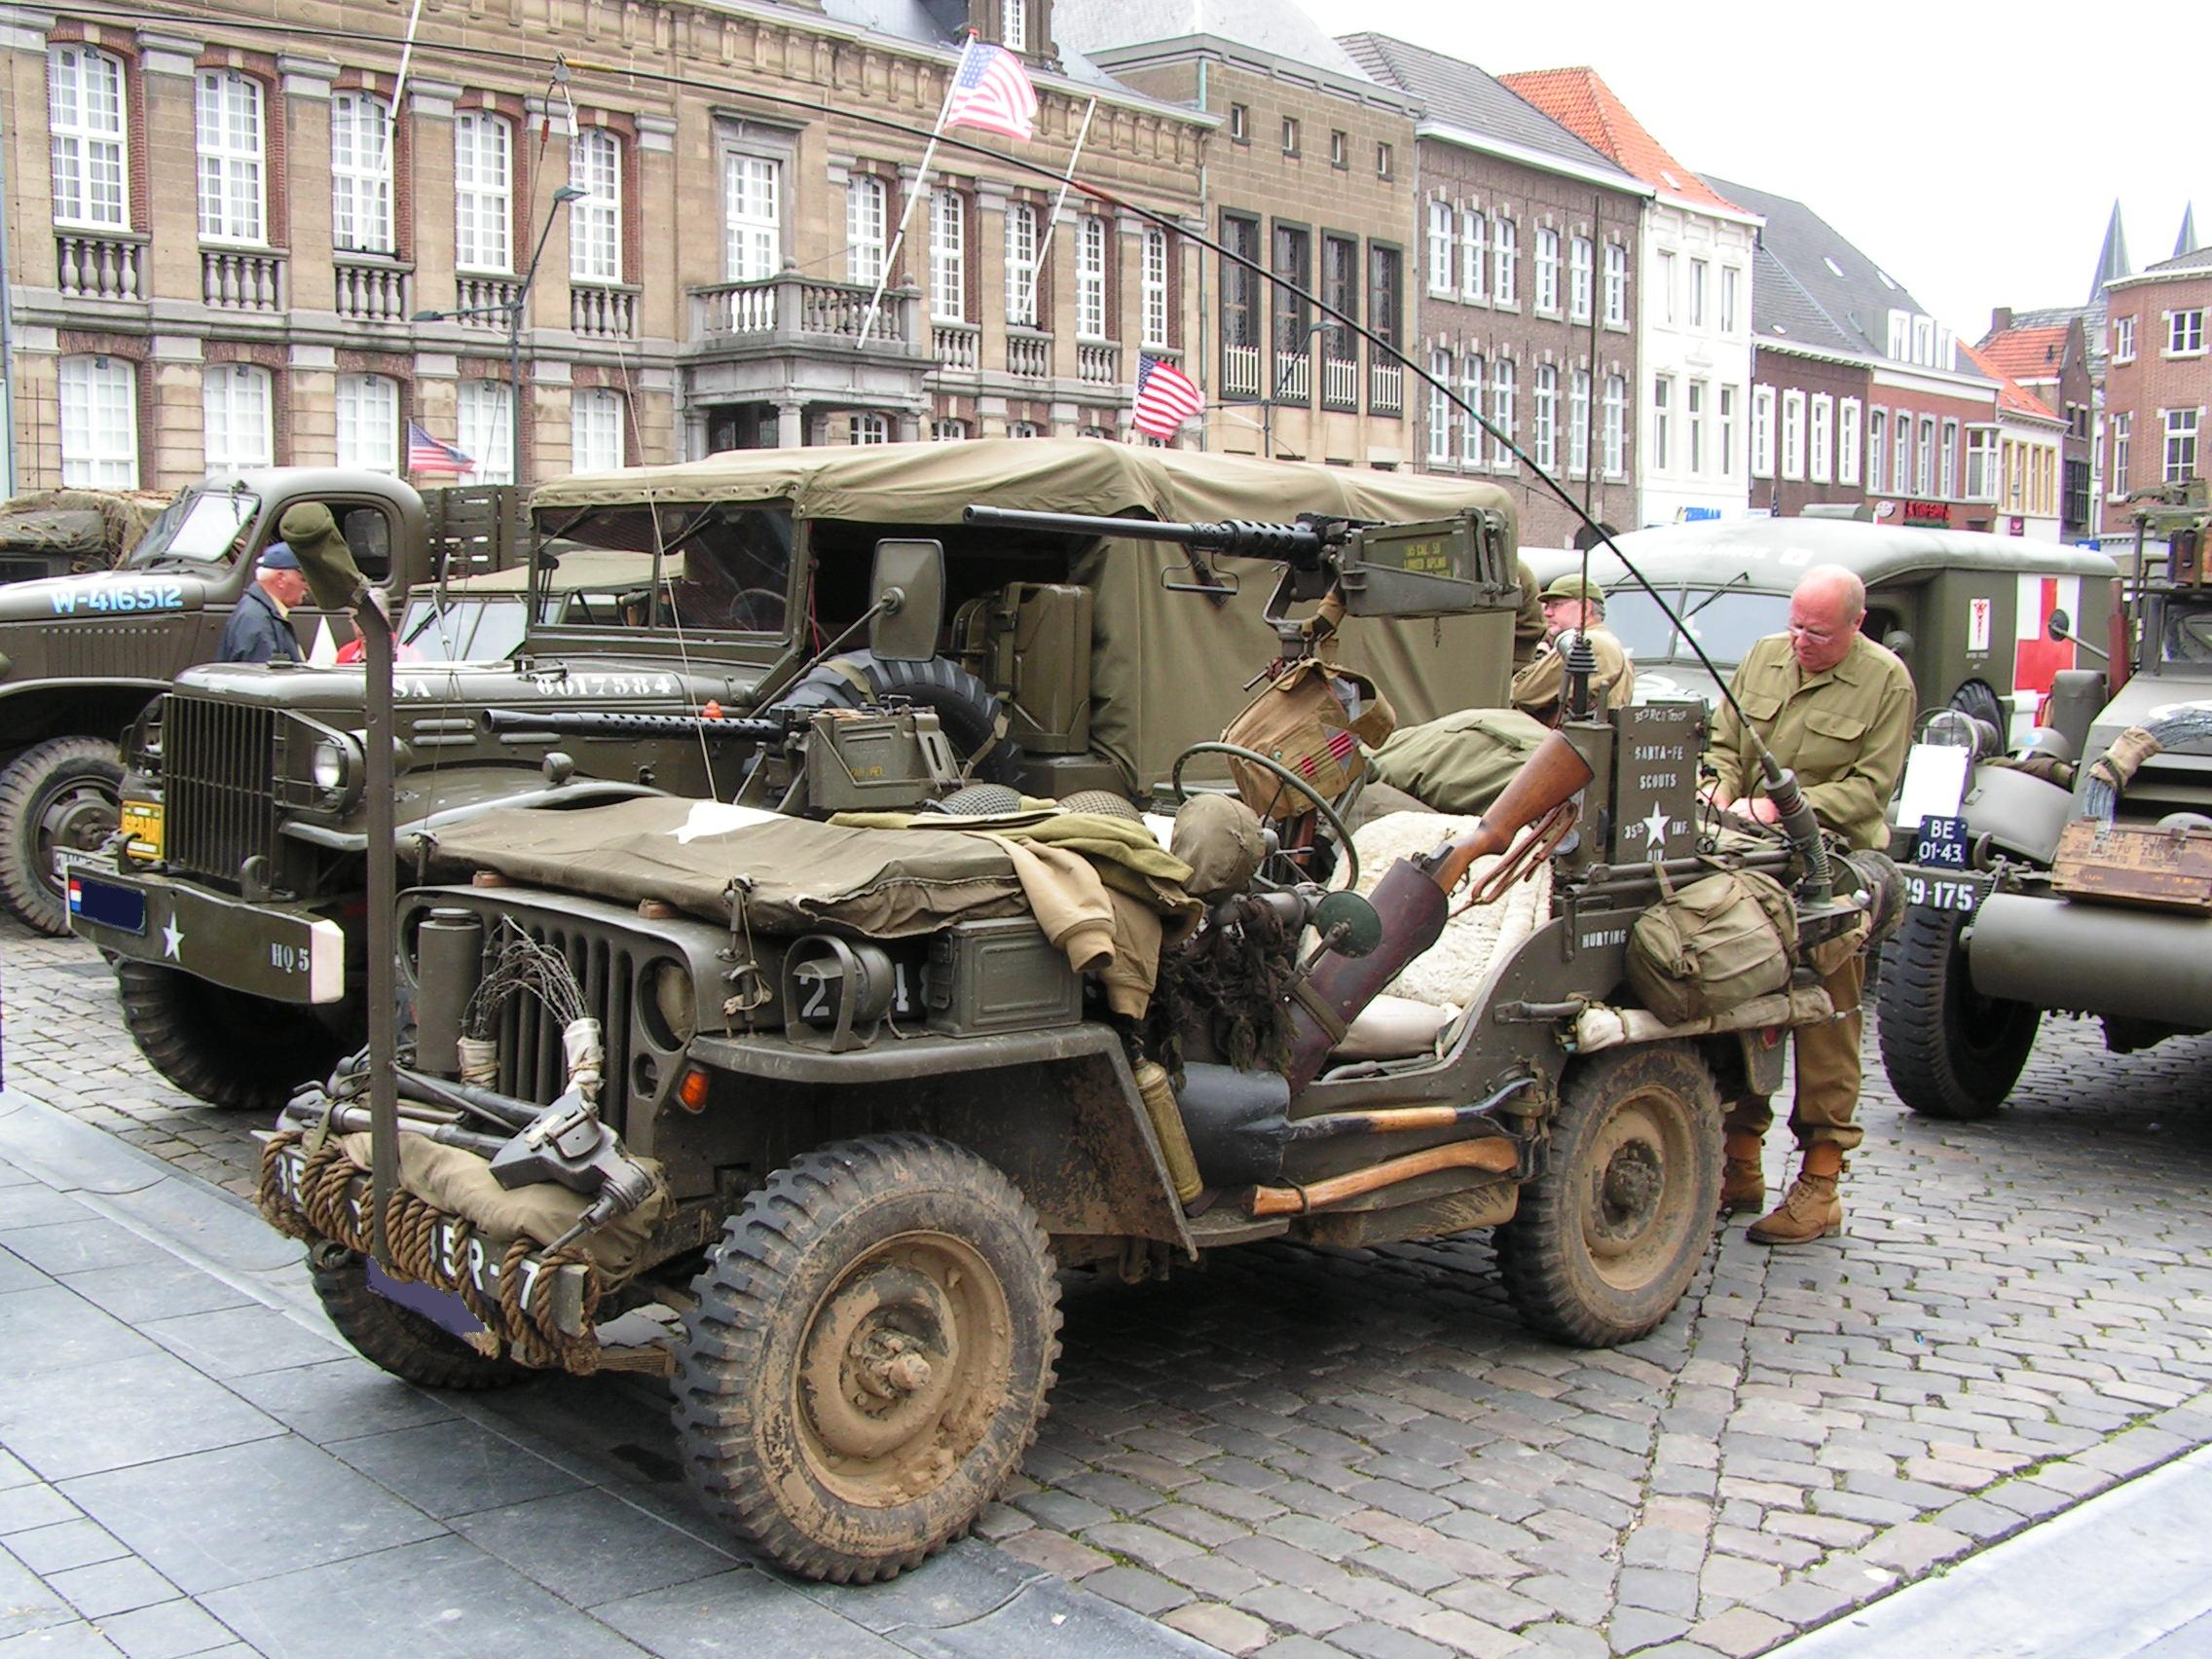 Jeep Willys #17